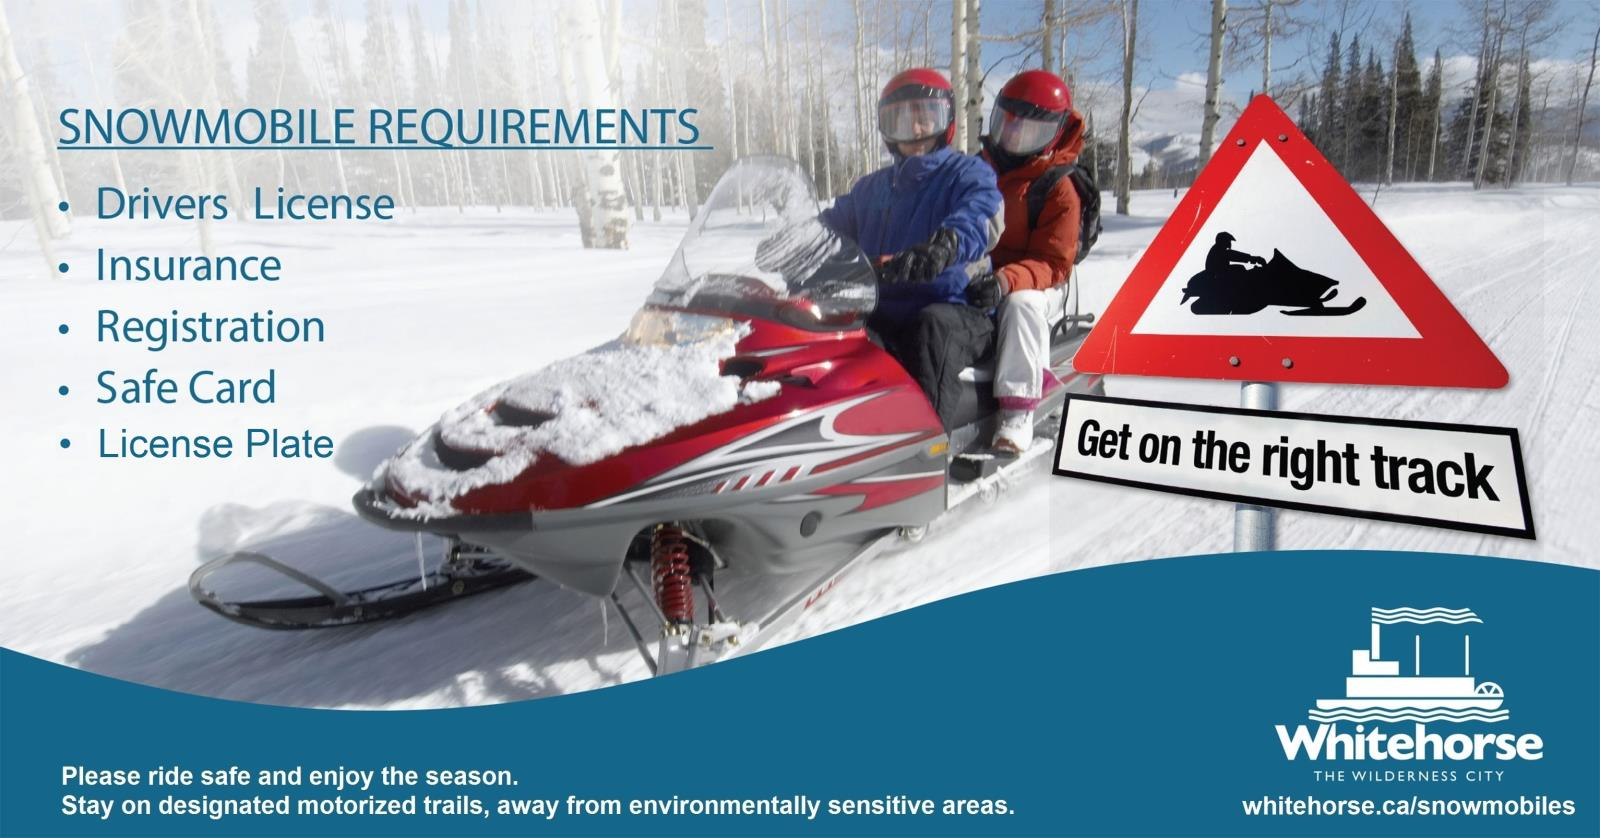 SNOWMOBILE REQUIREMENTS